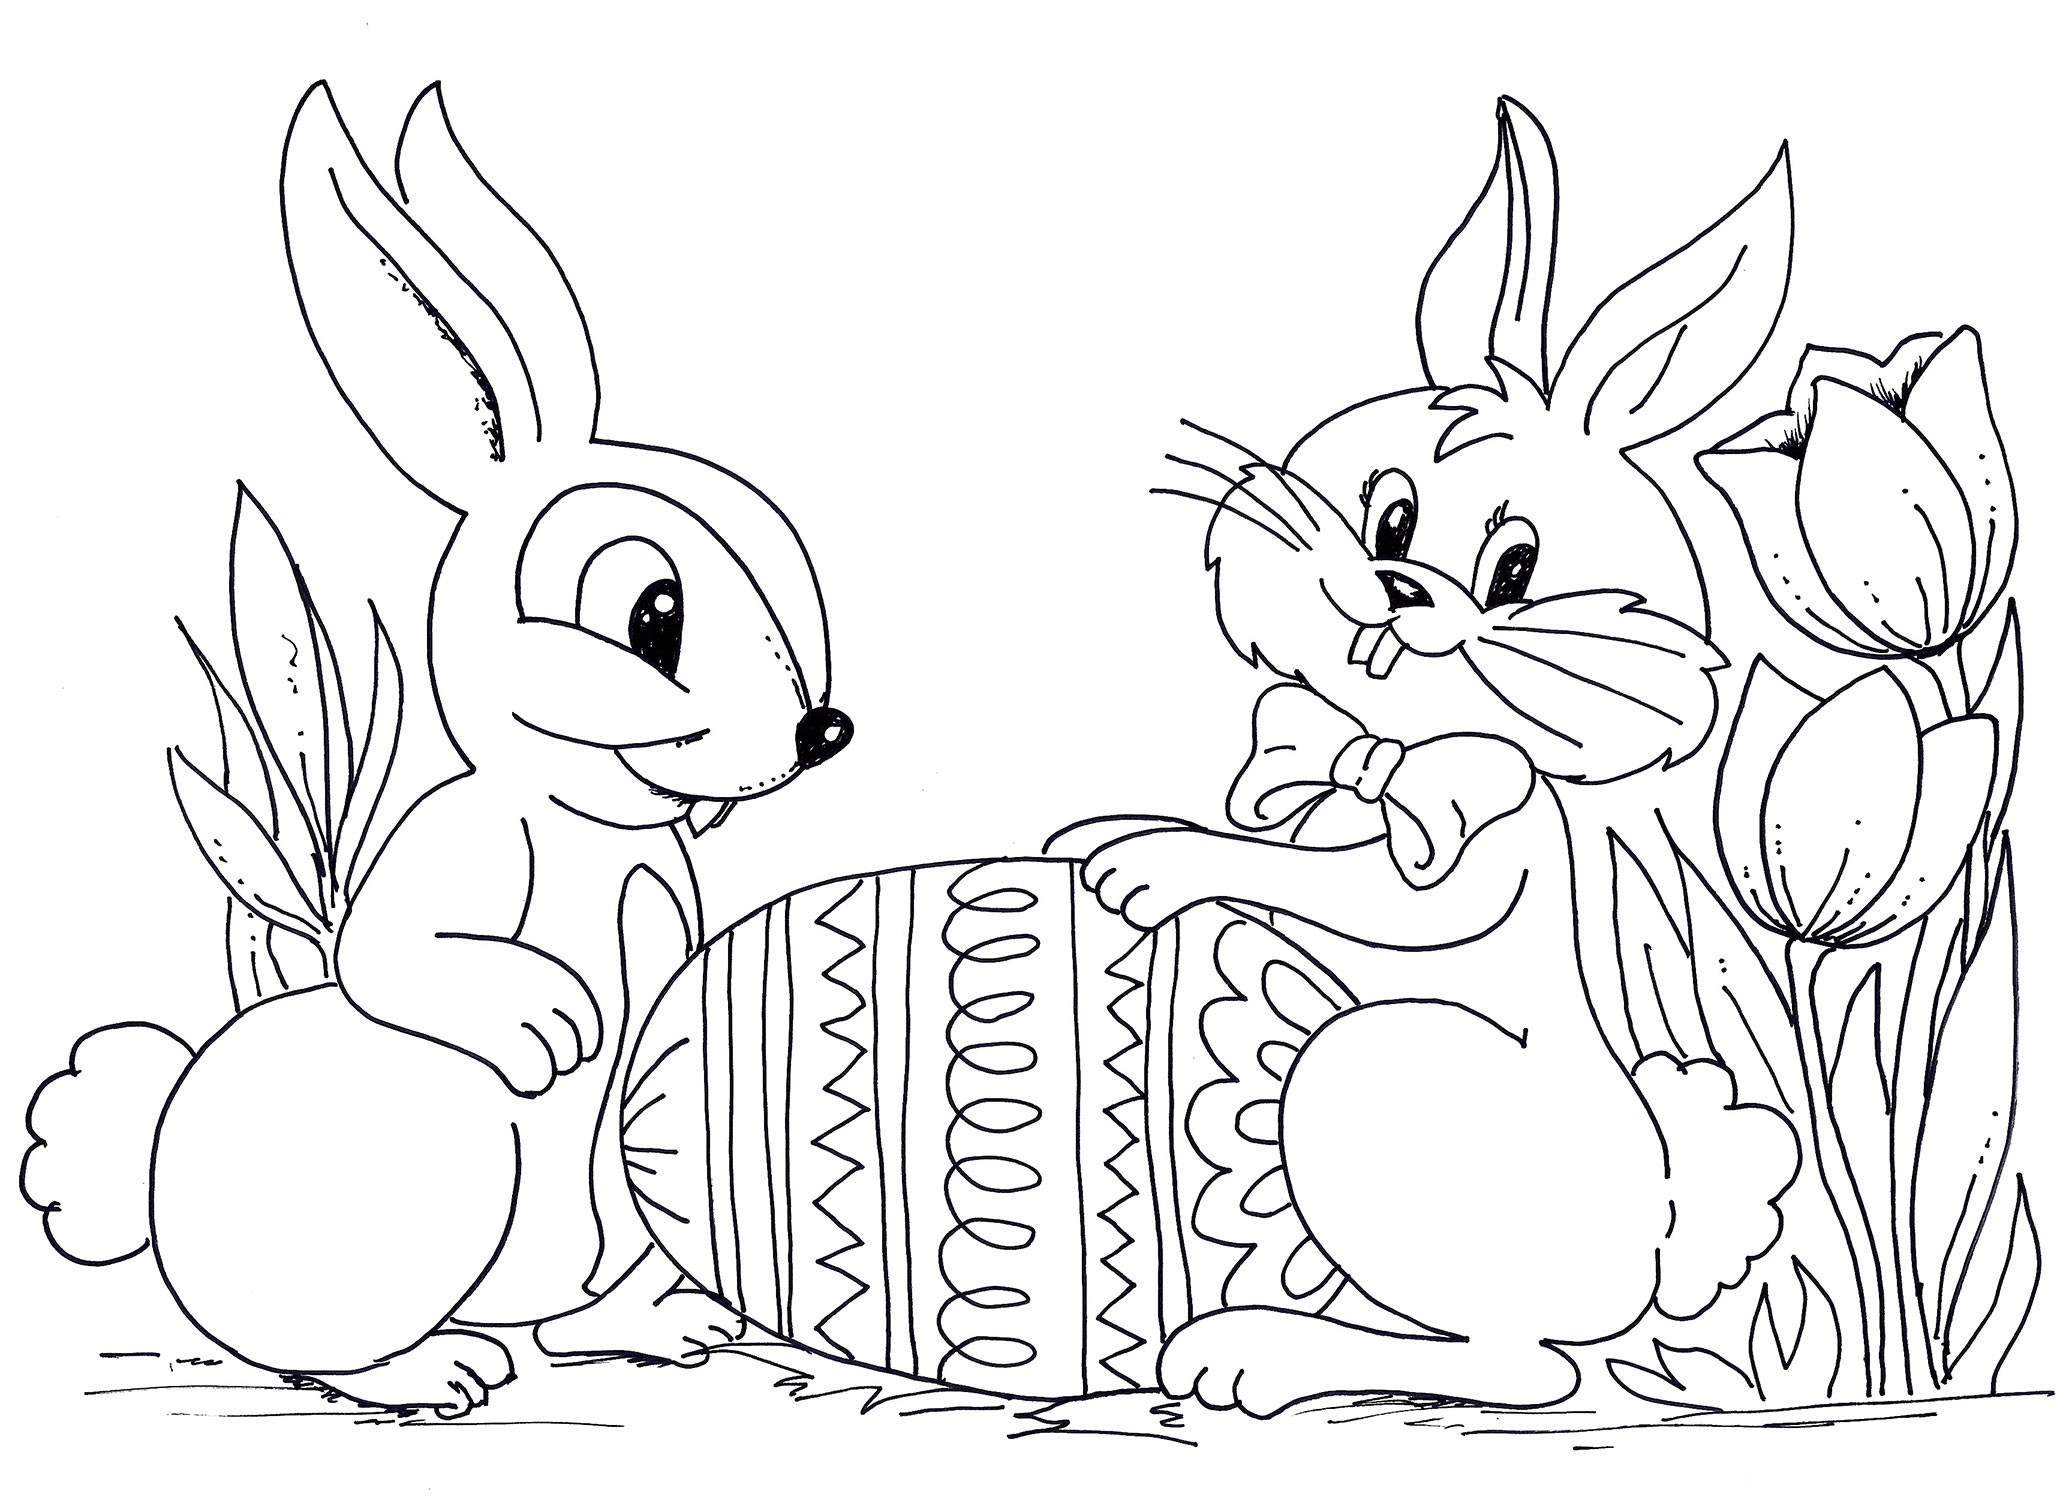 Easter Coloring Pages For Kids  Easter Coloring Pages Best Coloring Pages For Kids